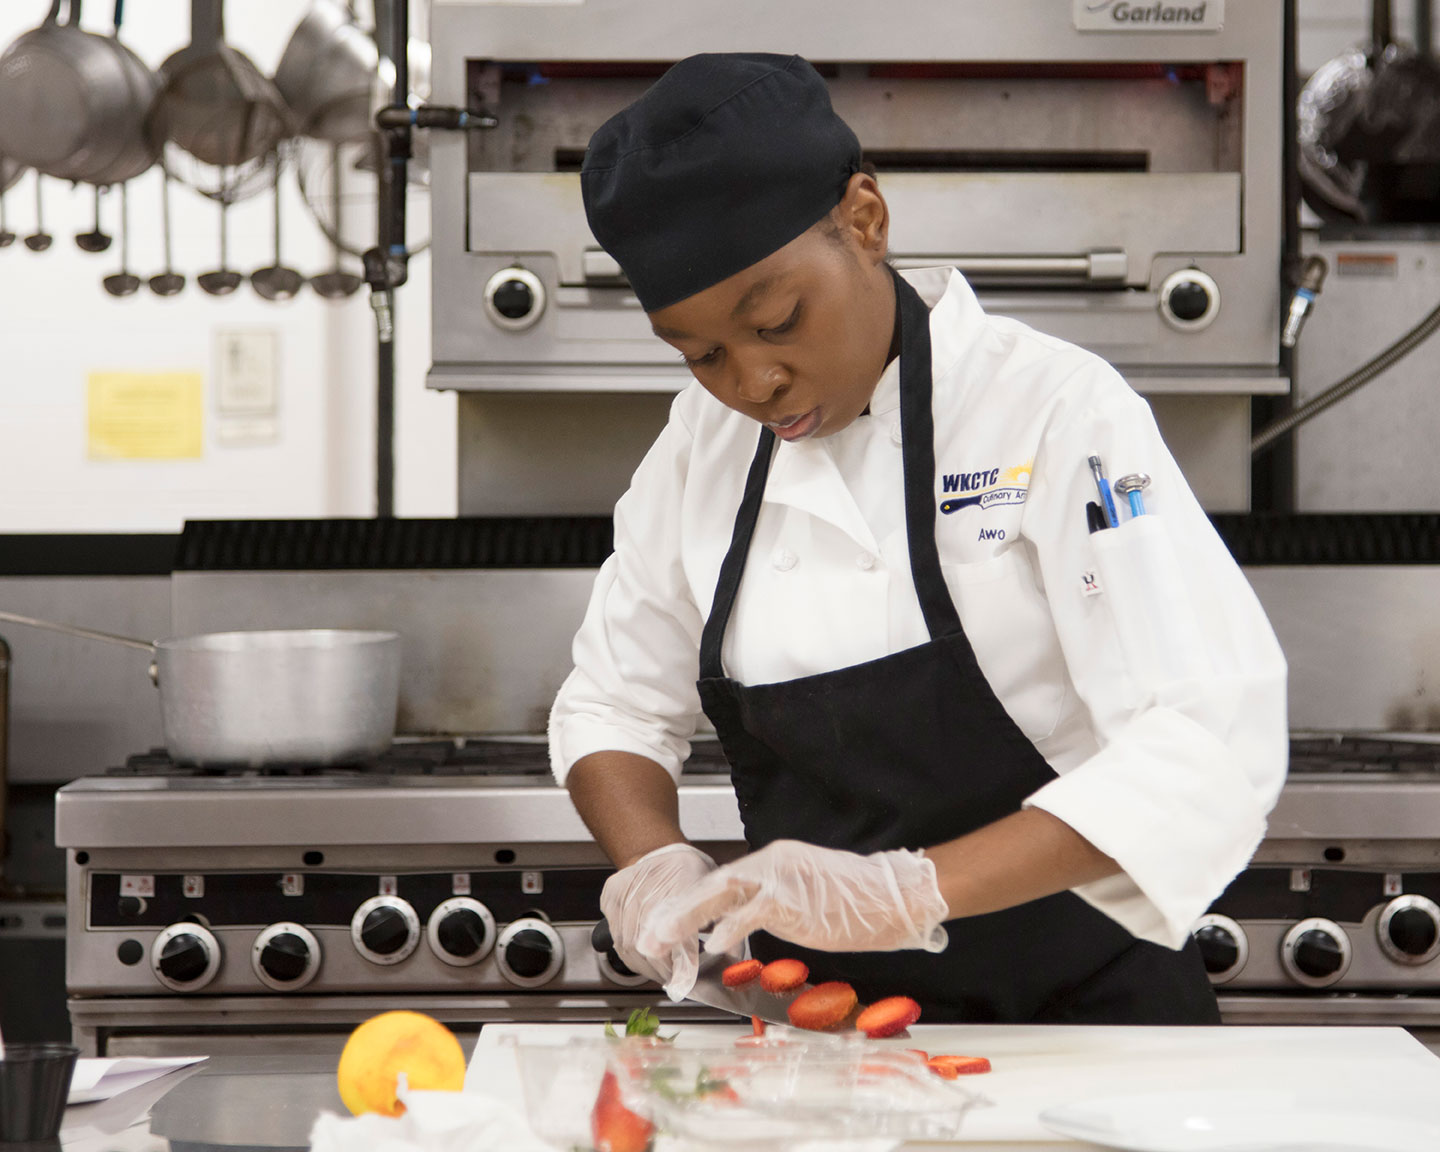 culinary student chopping vegetables